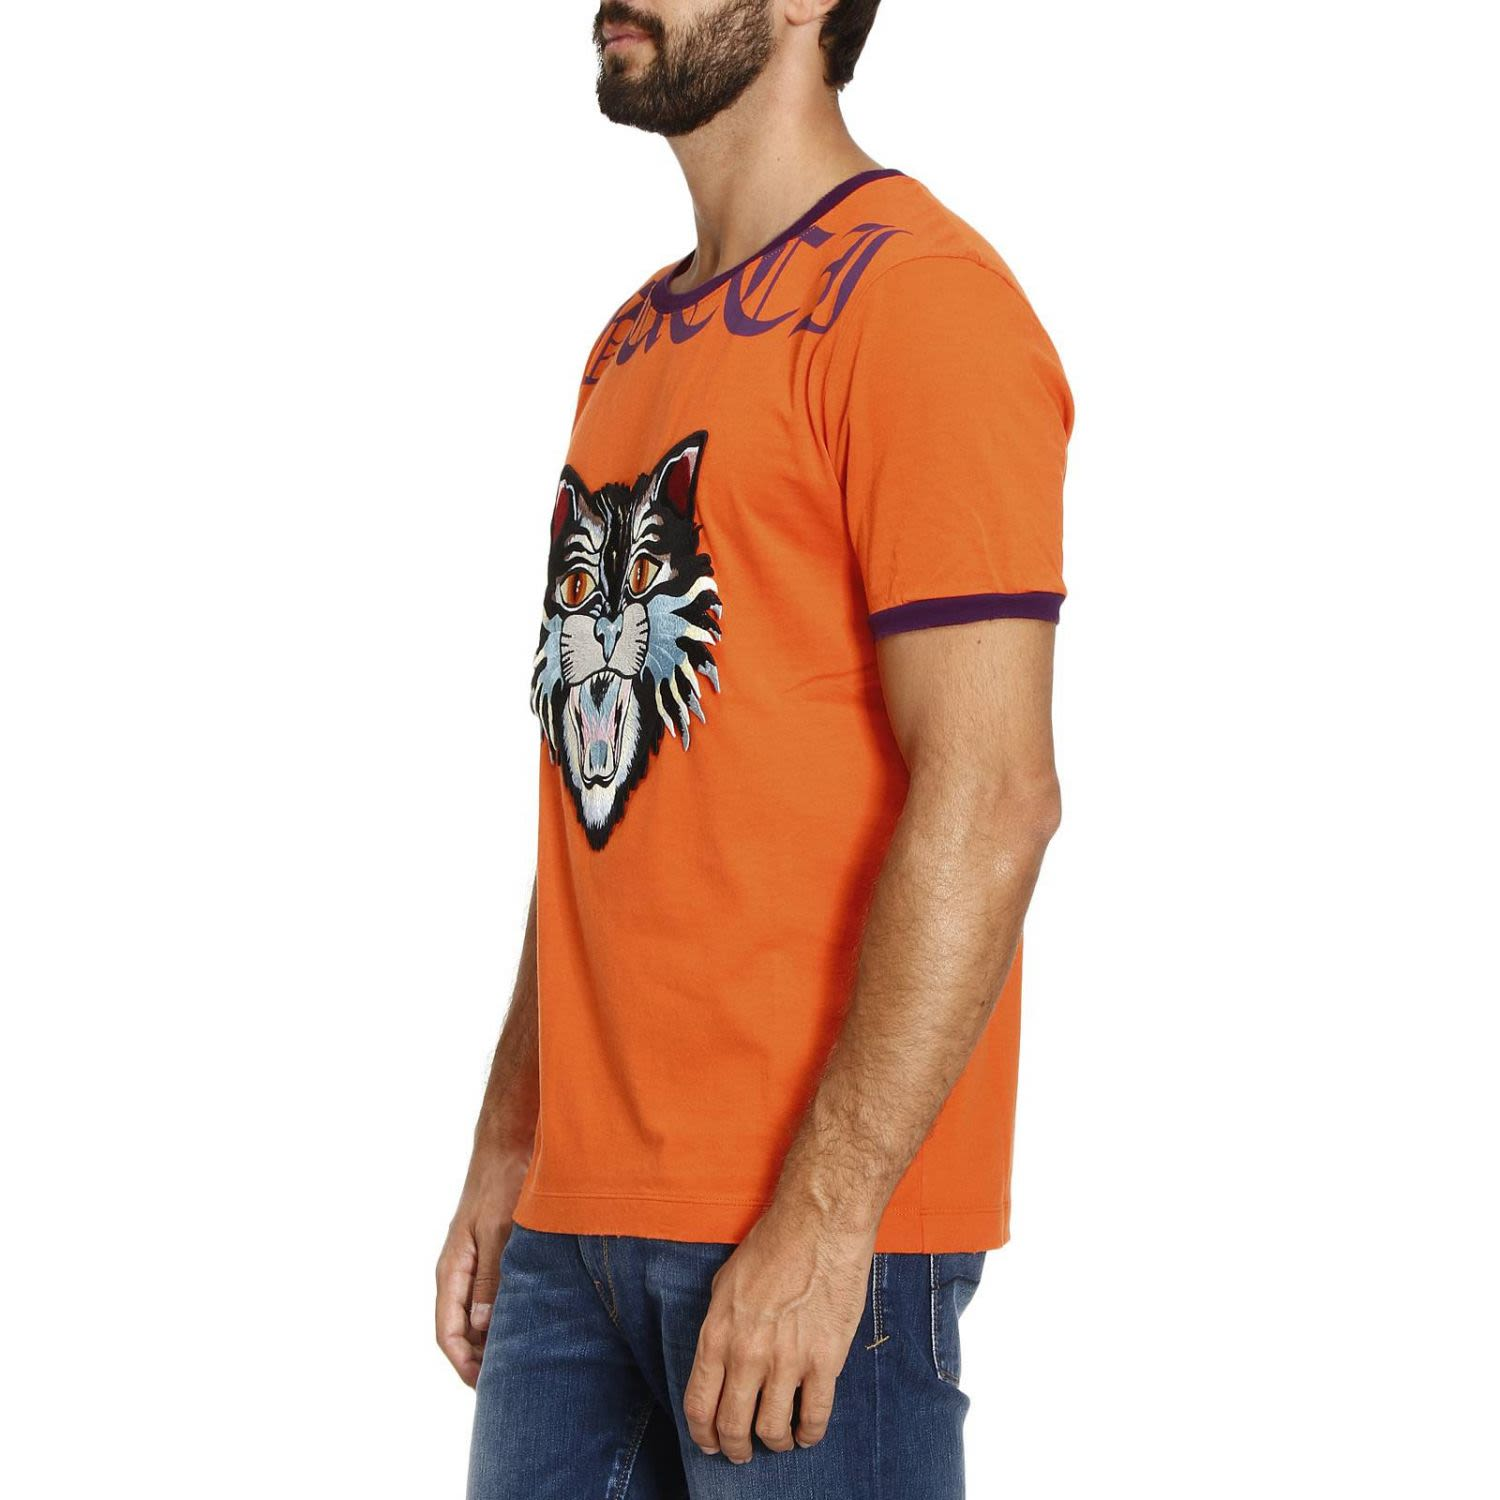 1eca53351e85 Gucci T-shirt T-shirt In Pure Cotton With Angry Cat Maxi Patch And Writing  - yellow - 7741286 | italist